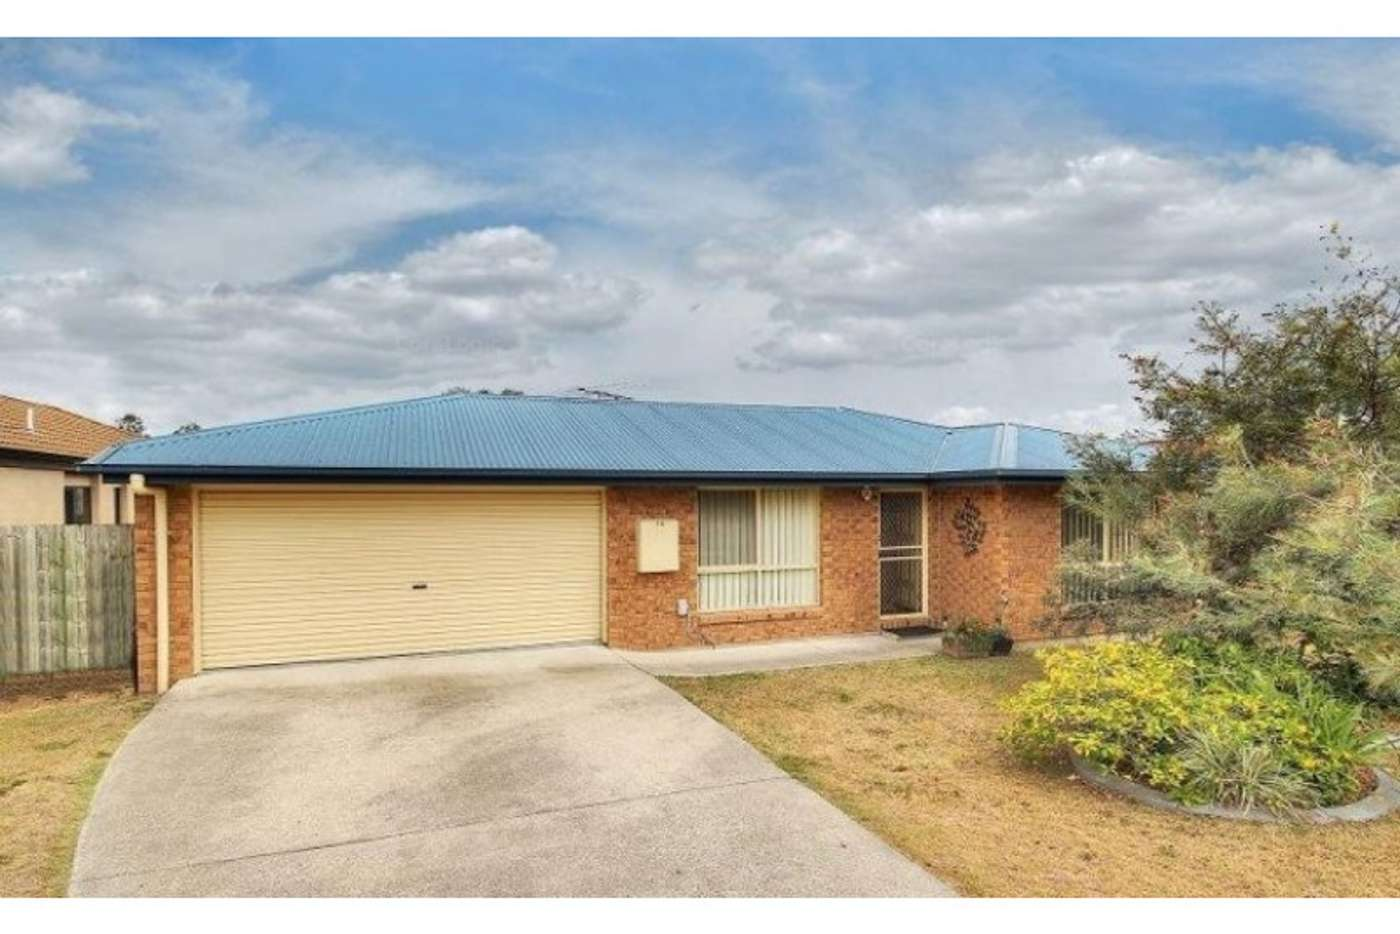 Main view of Homely house listing, 10 Wisdom Way, Crestmead QLD 4132